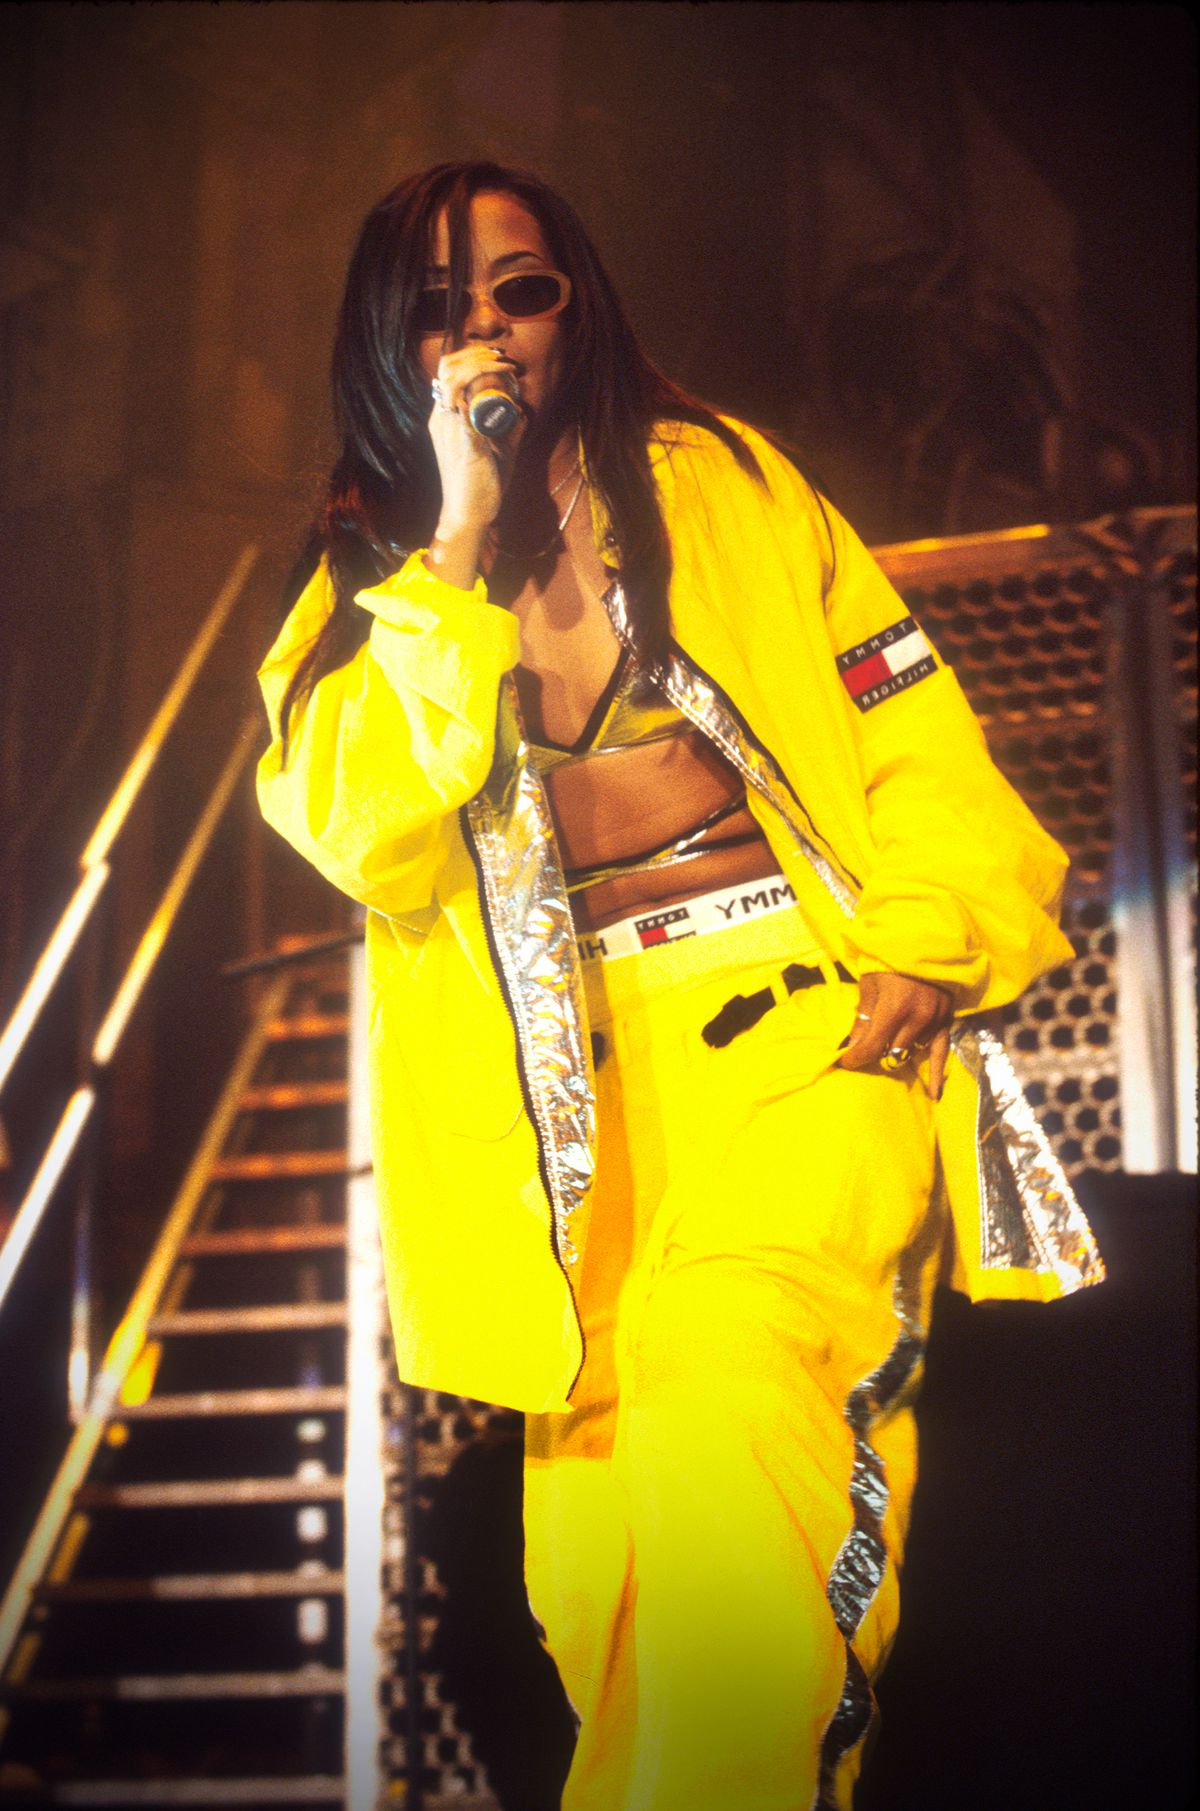 Aaliyah R Kelly And Reconciling A Musical Icon Vox